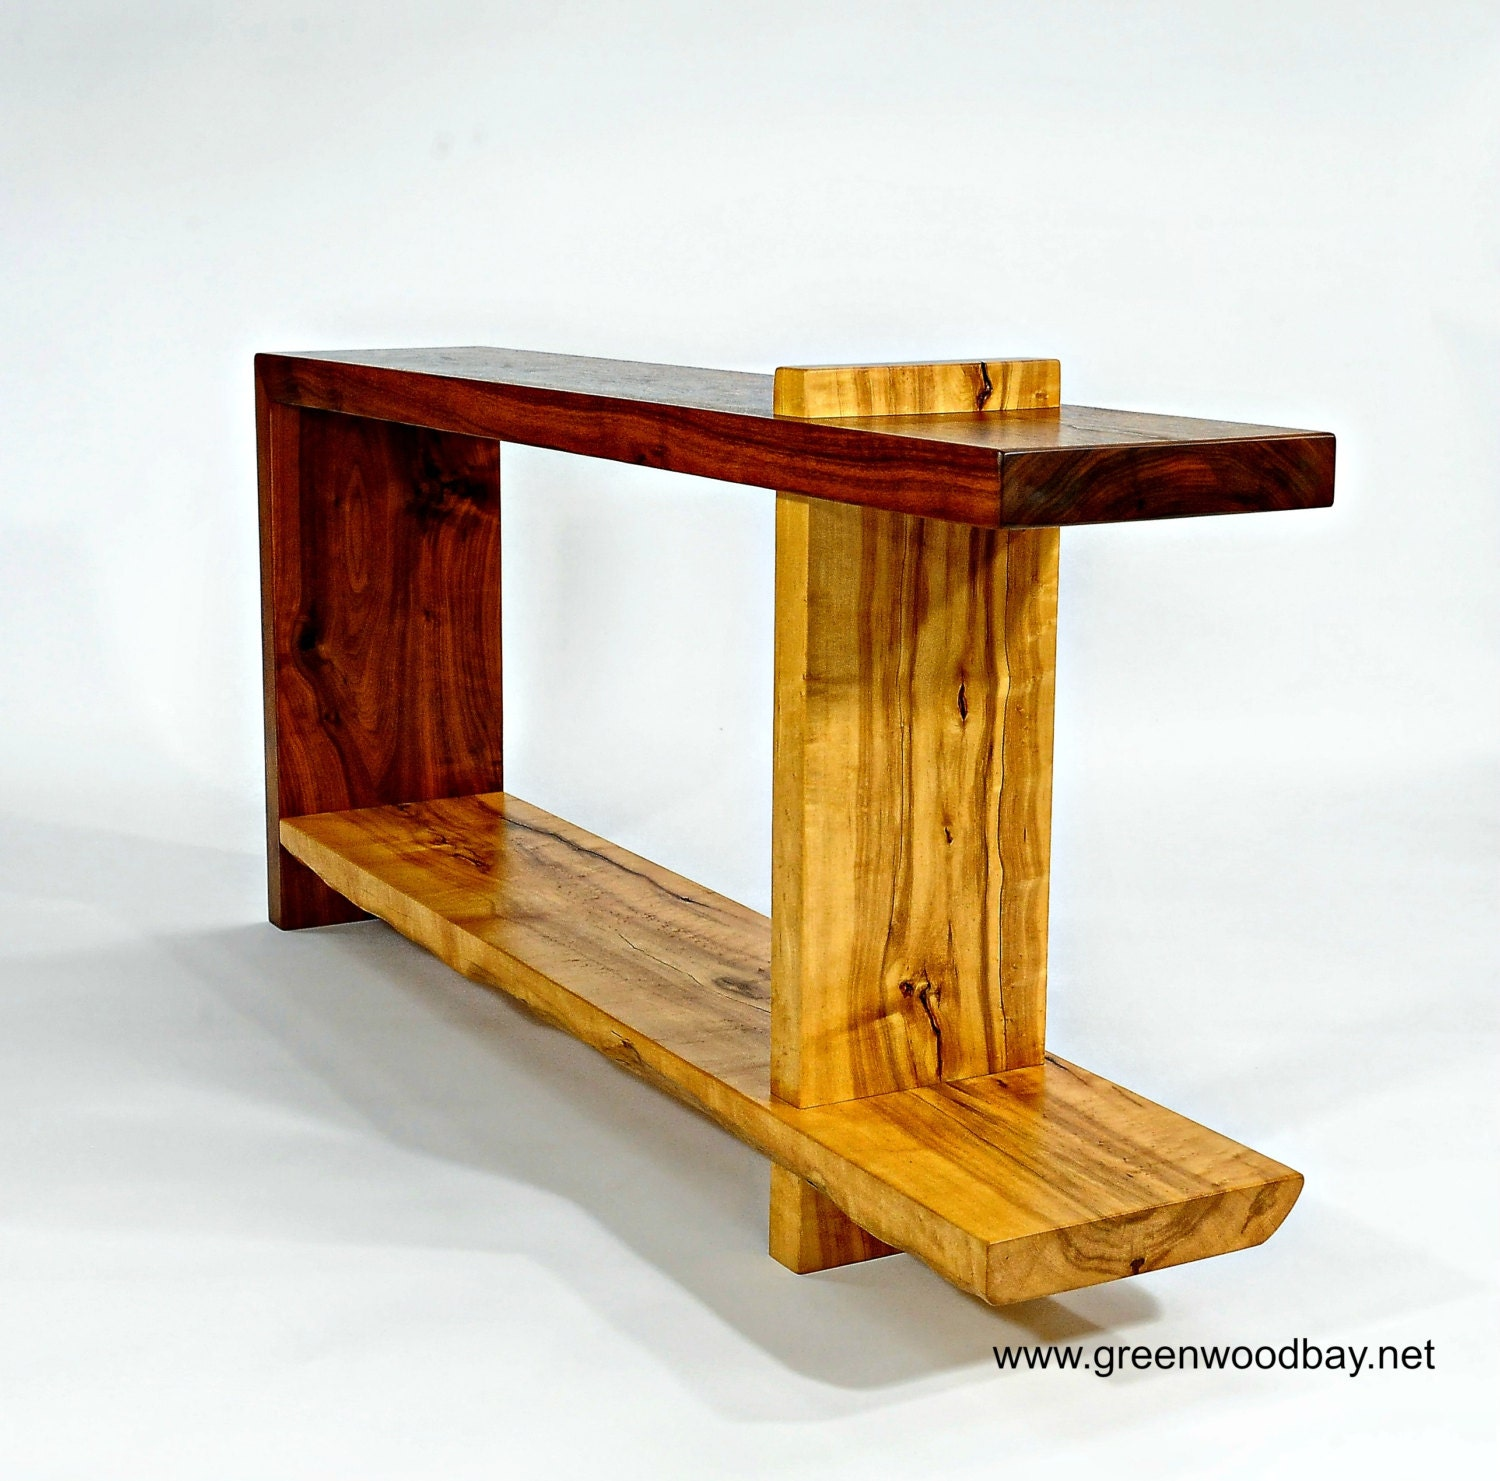 Wood Console Table Wood Sofa Table Walnut Table Maple Wood Table Contemporary Wood Sofa Table Wood End Table Reclaimed Wood Table